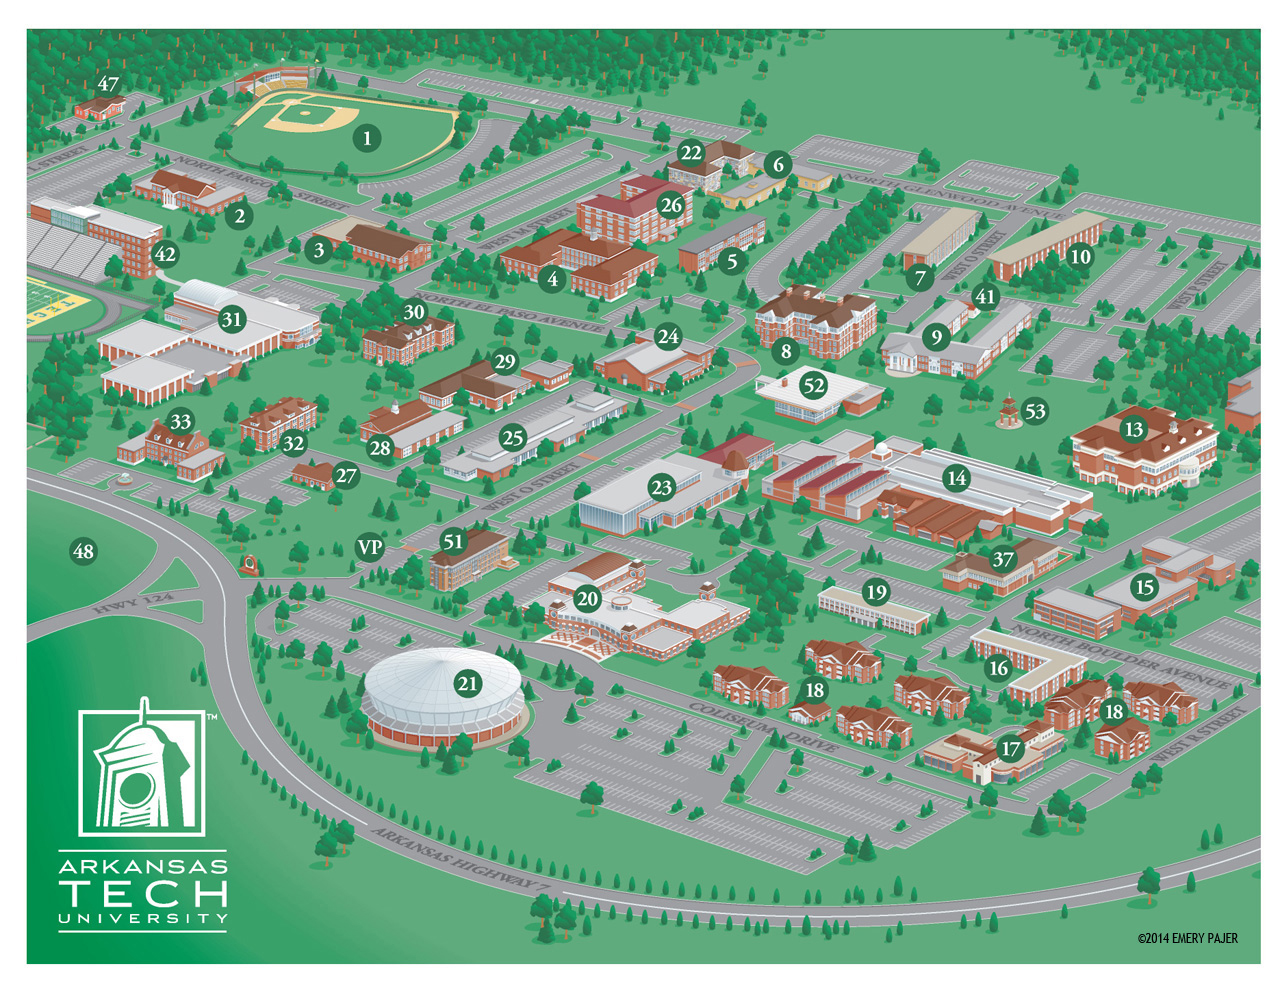 d wayfinding campus map of arkansas technical university. wayfinding city park and college campus map illustration  design